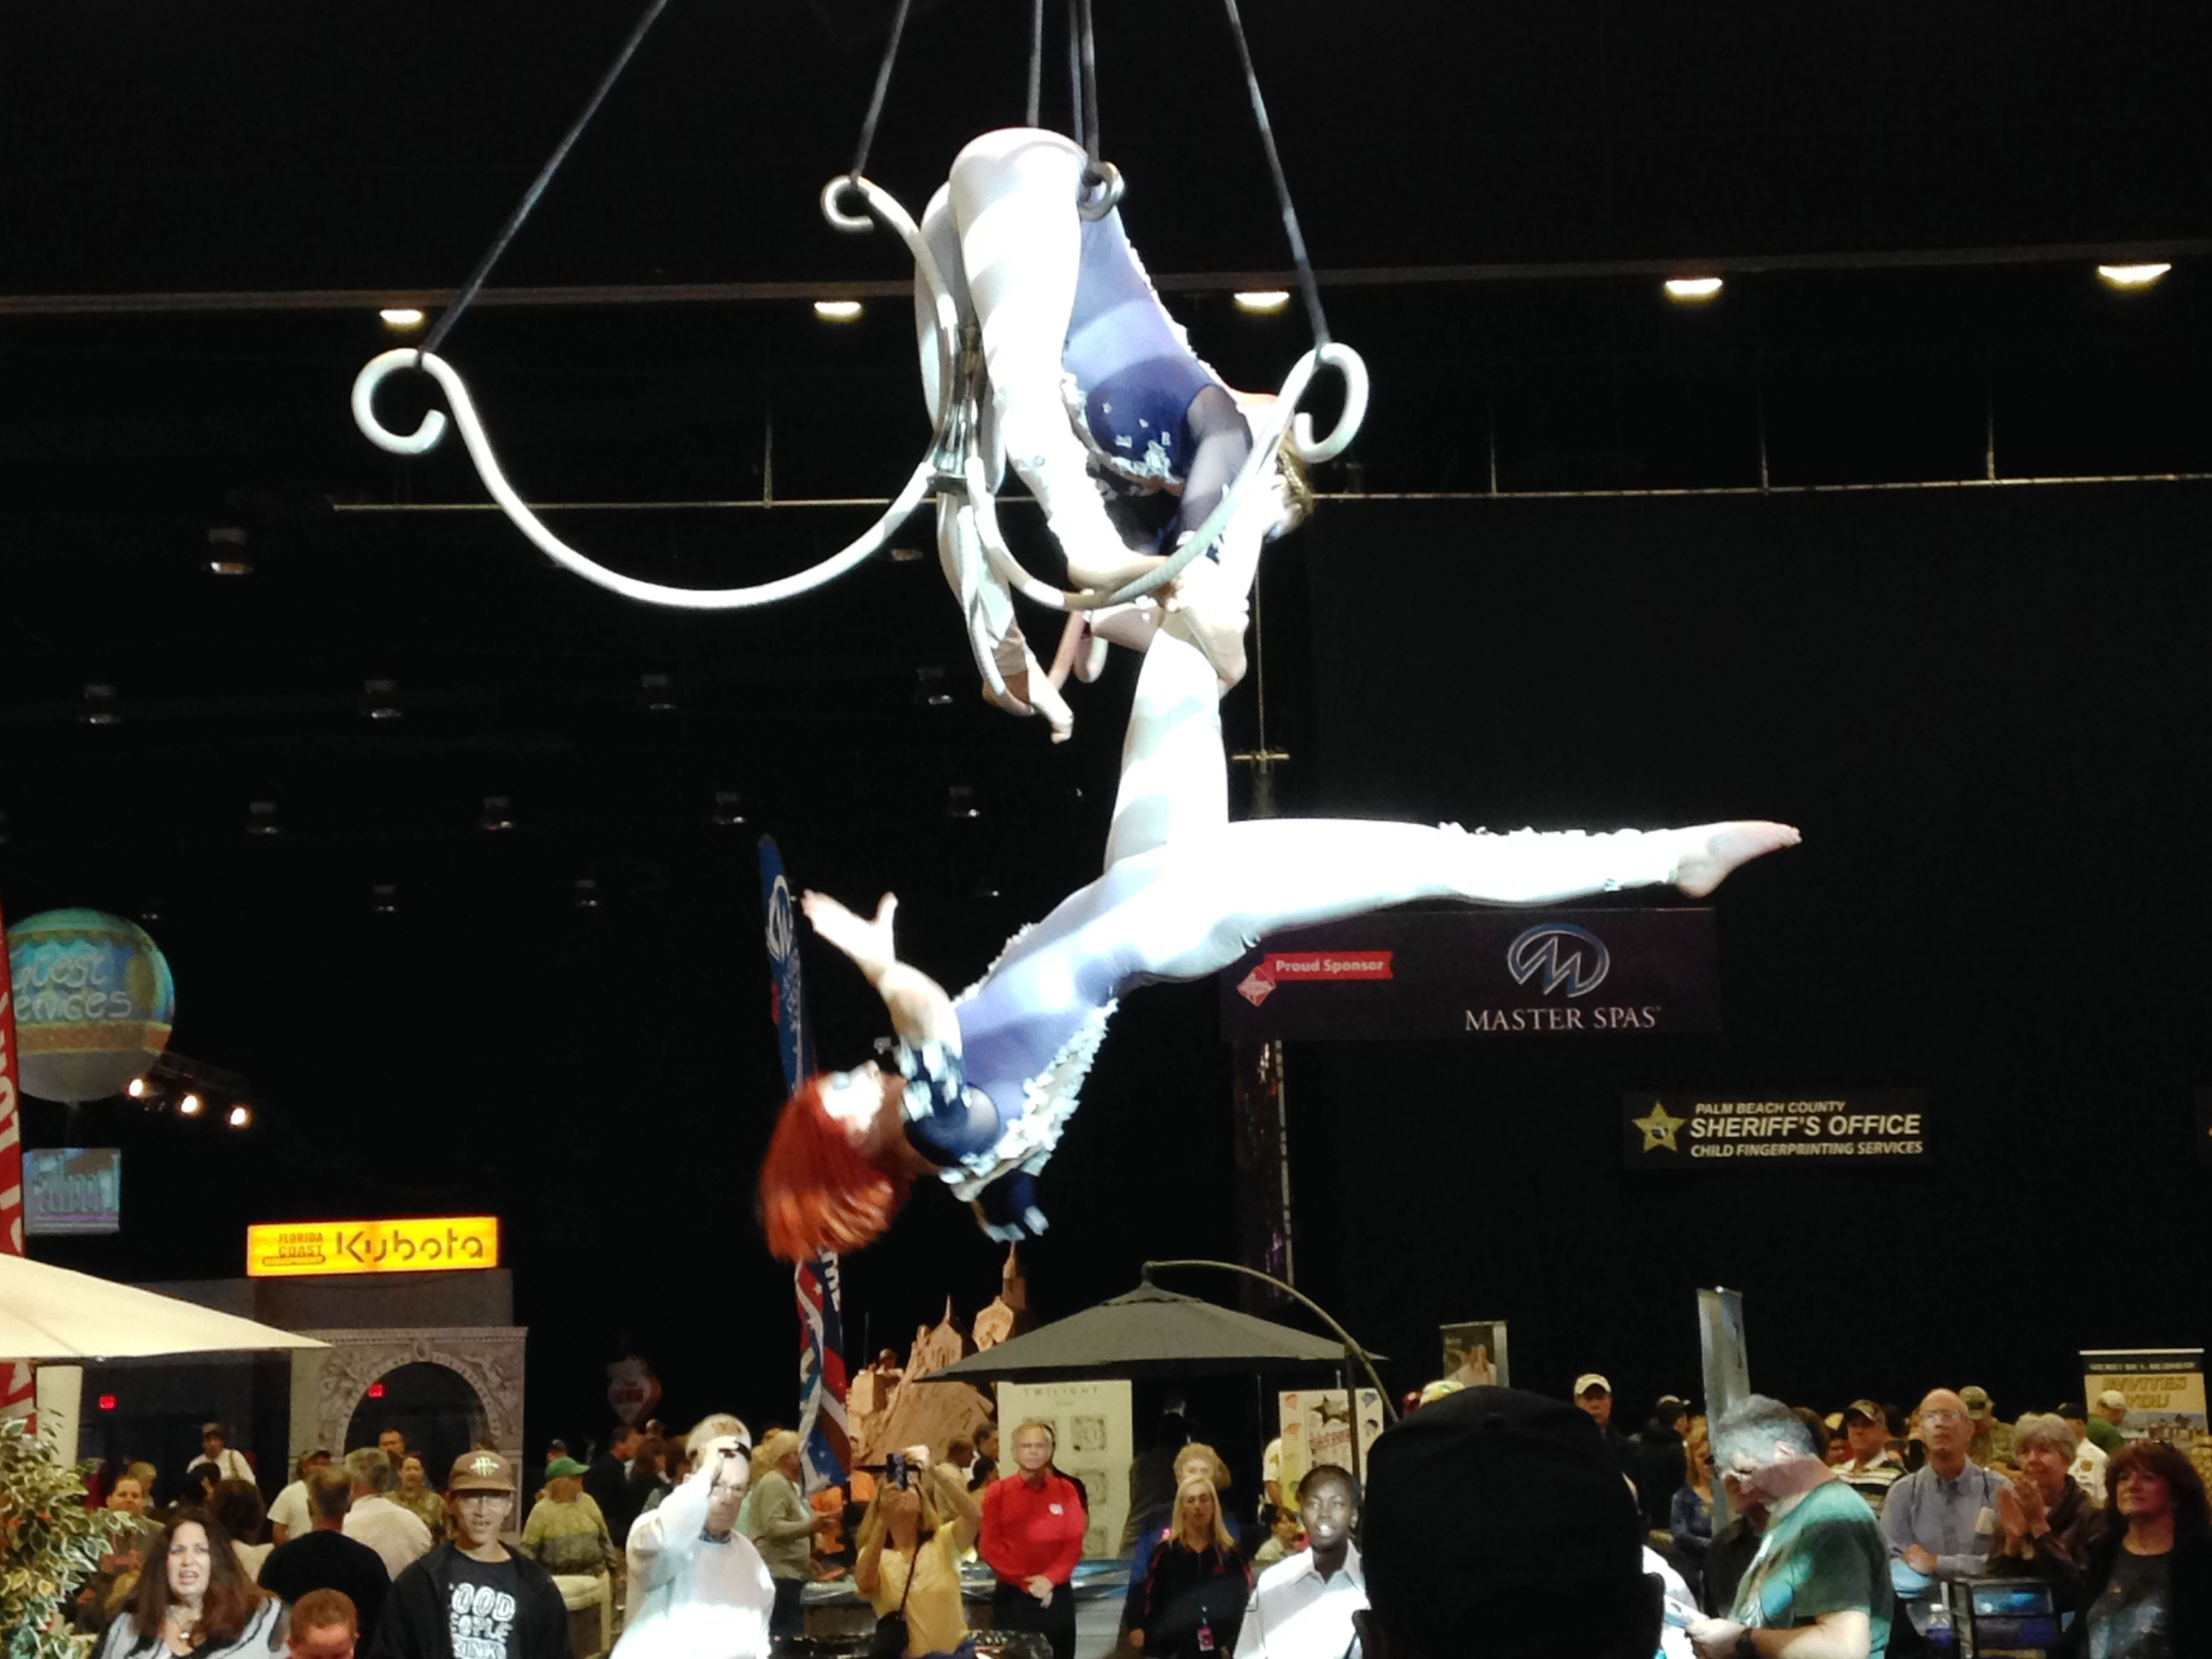 SFFair_Vegas Acrobats perform above the Expo Center Crowds_2015